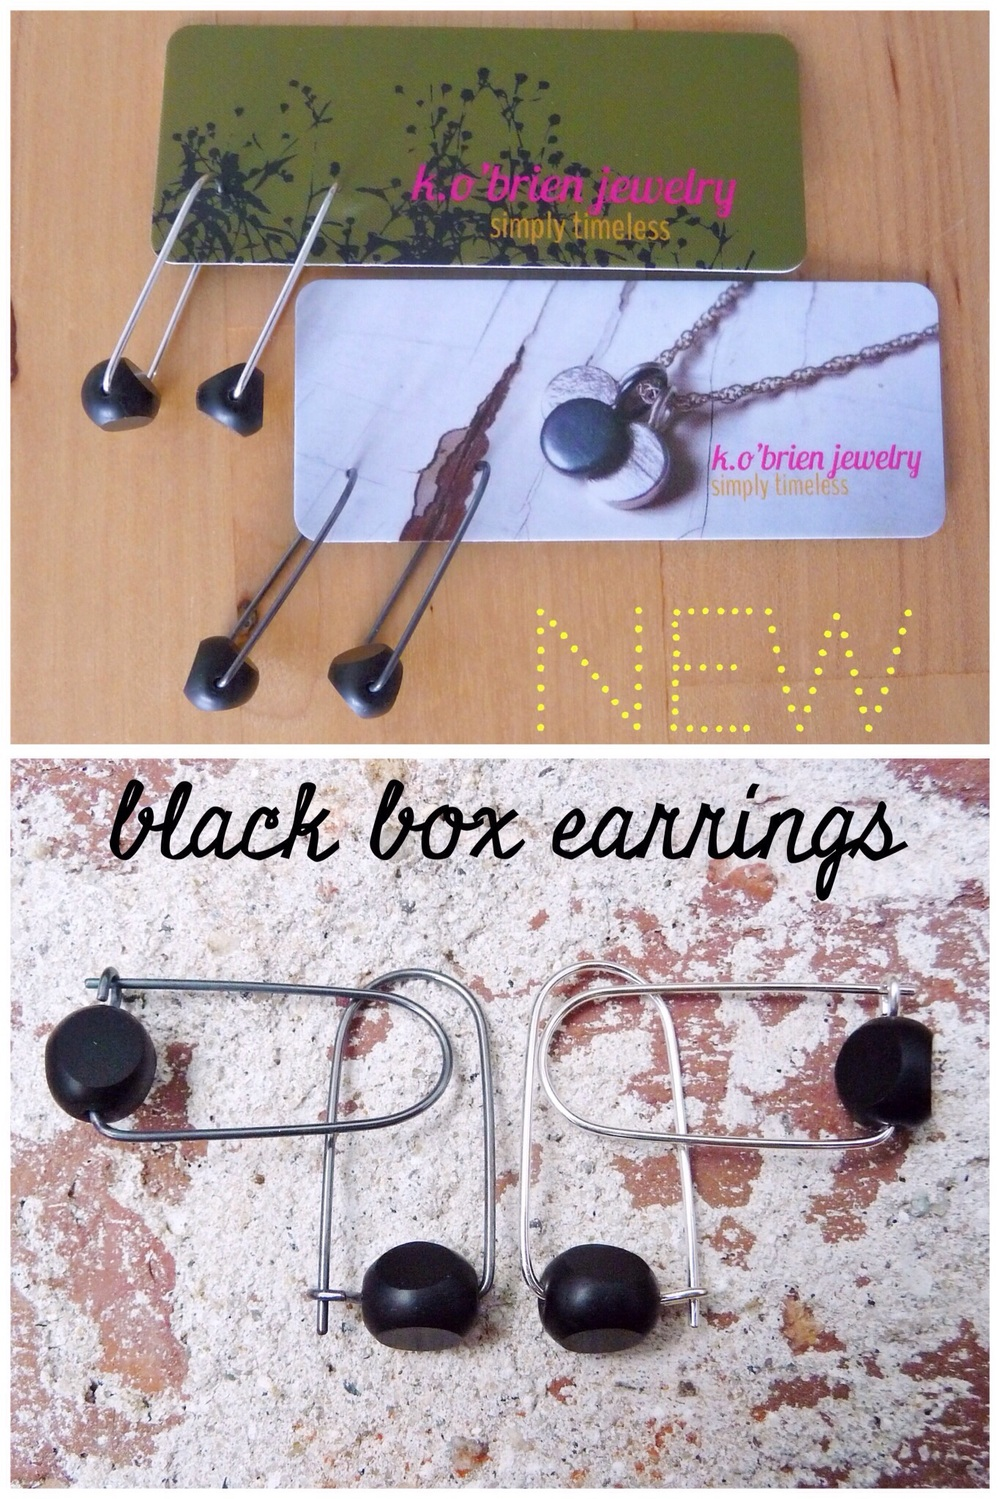 black box earrings.jpg